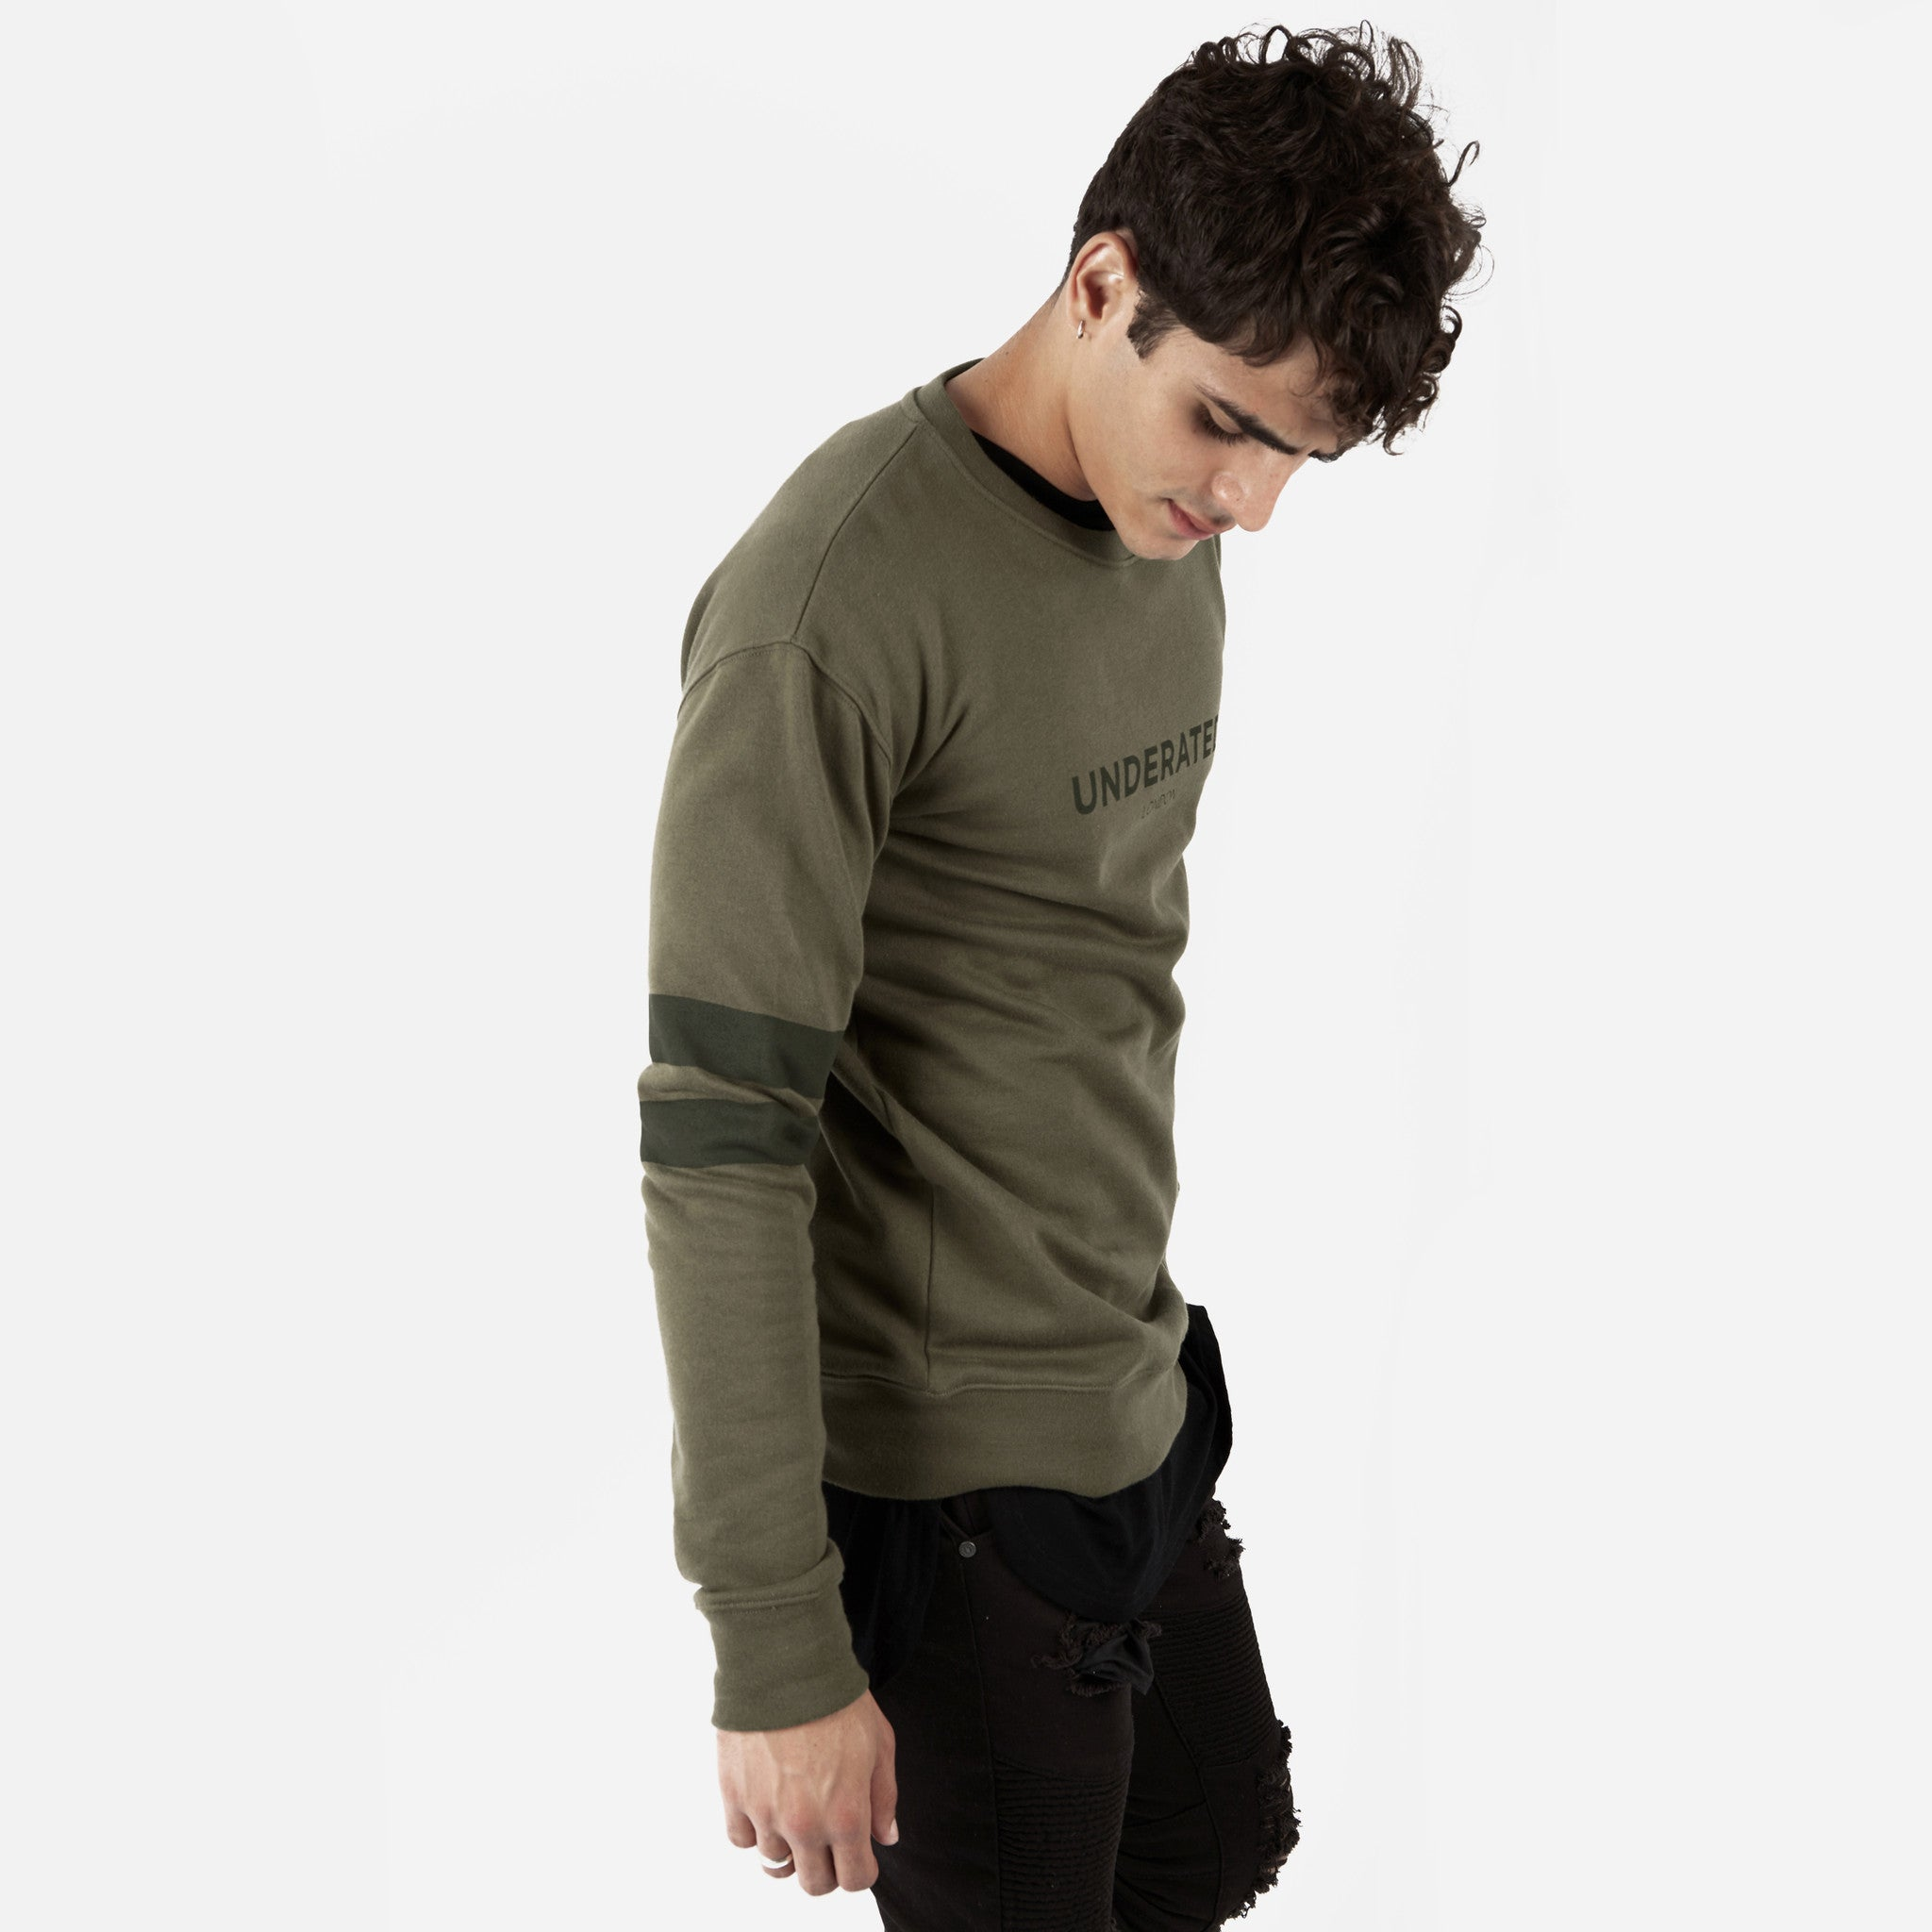 SW400 Tonal Print Sweatshirt - Khaki - underated london - underatedco - 6